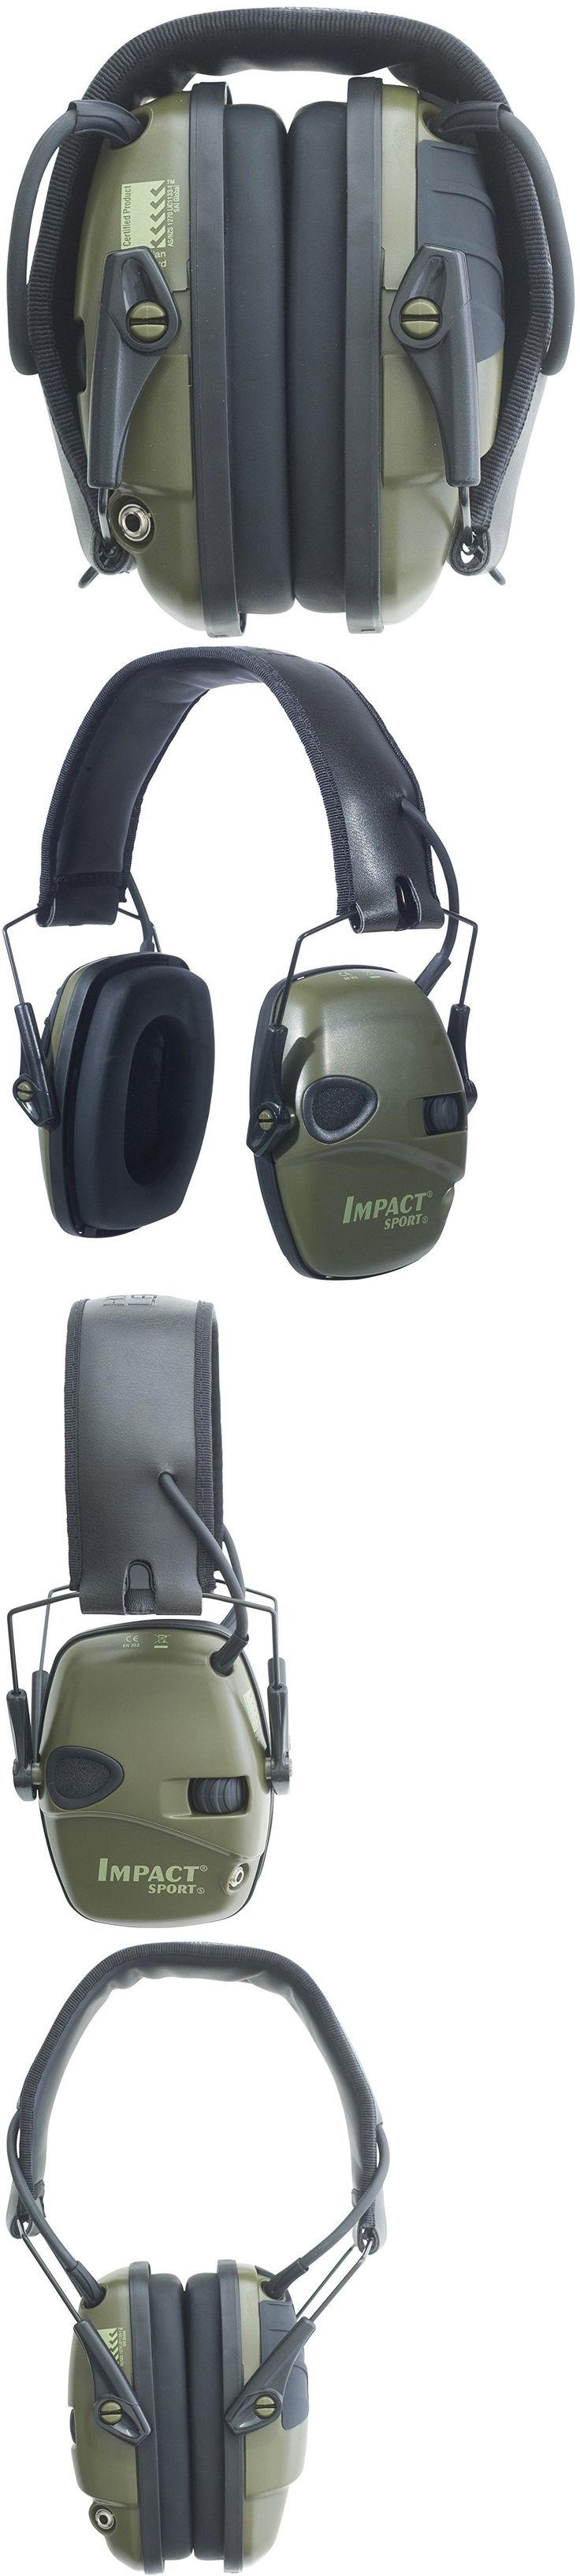 Hearing Protection 73942: Electronic Ear Muffs Shooting Protection Noise Cancelling Head Gear Impact -> BUY IT NOW ONLY: $55.68 on eBay!